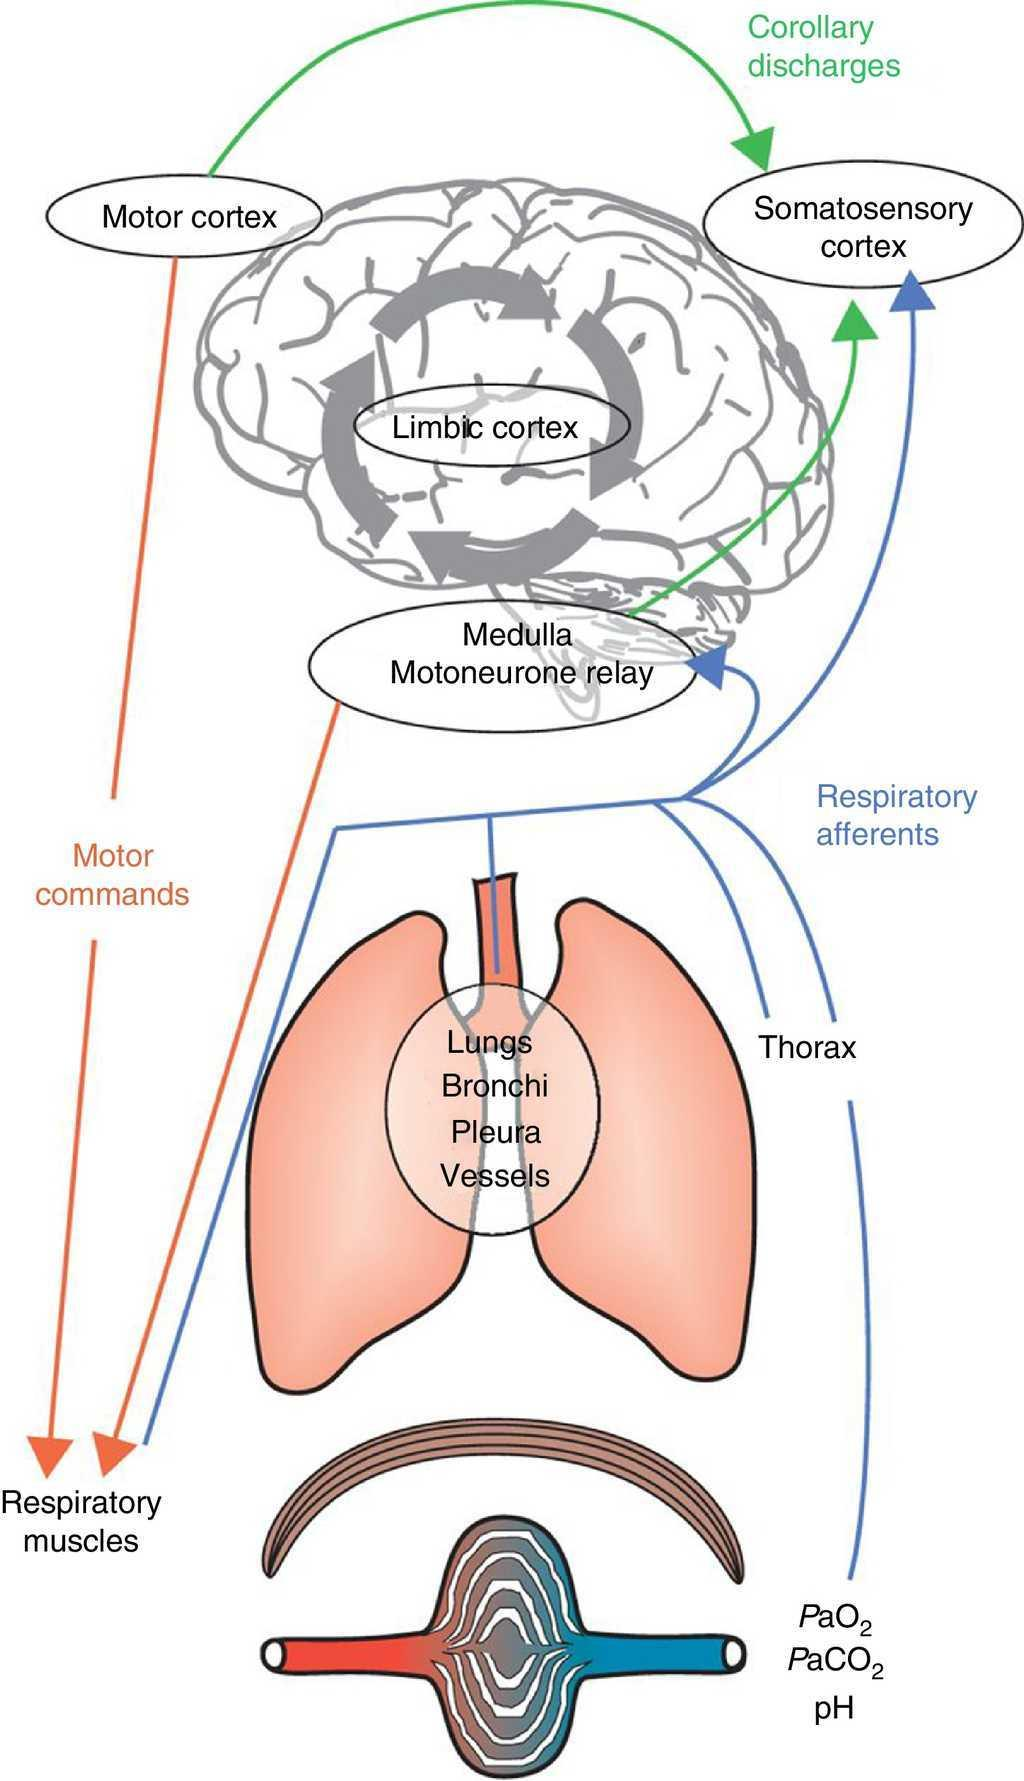 Exertional dyspnoea in chronic respiratory diseases from physiology integrative mechanisms underlying dyspnoea respiratory command derives from inputs from both the motor cortex and ccuart Choice Image